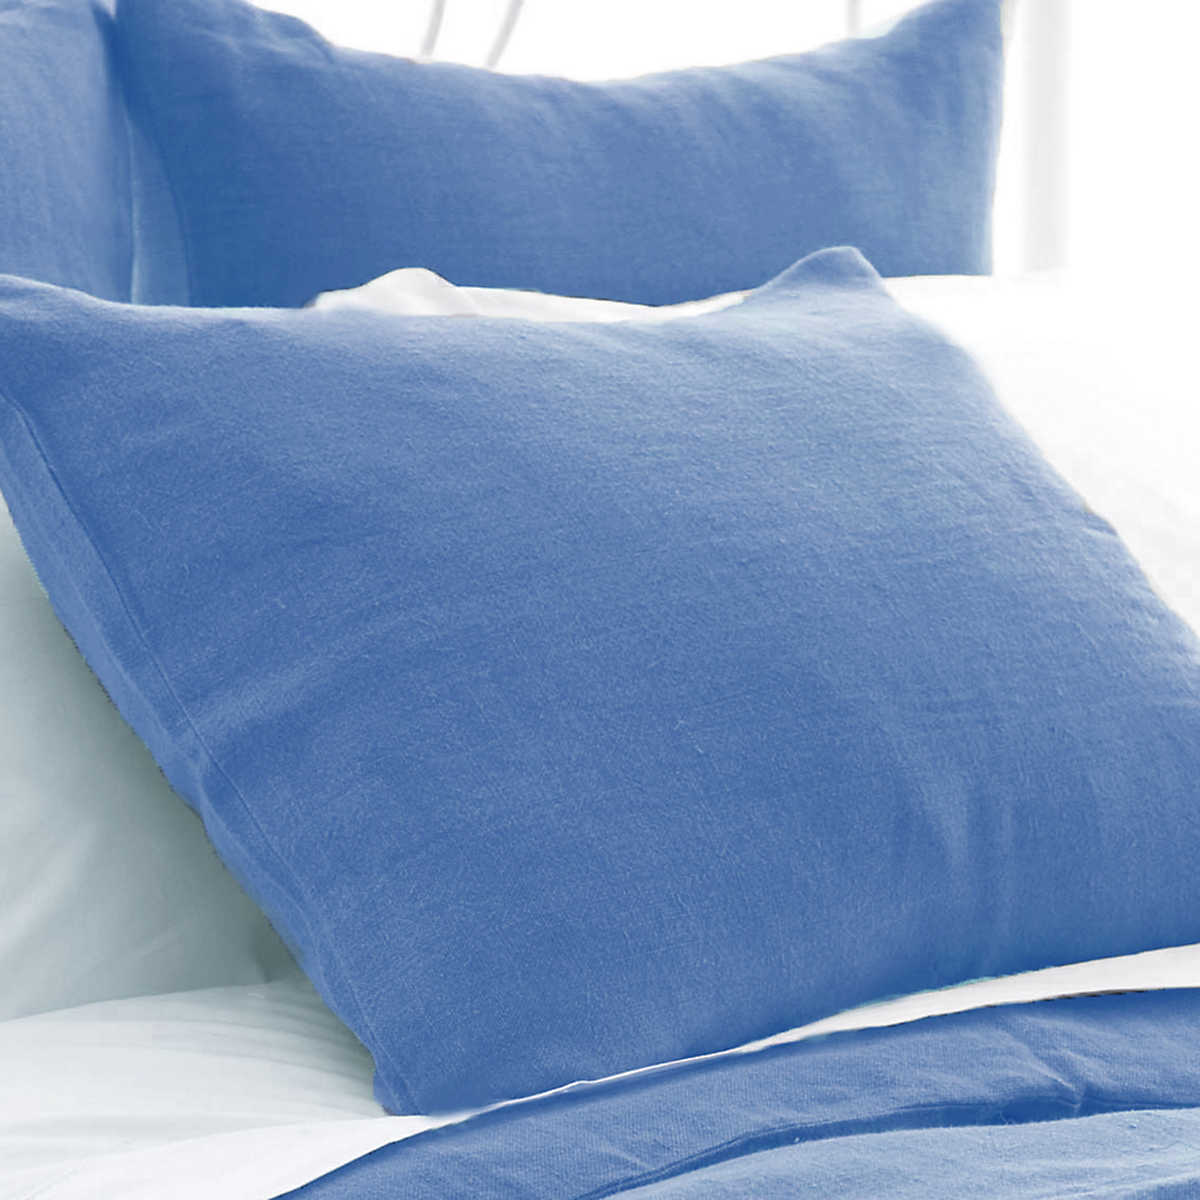 Stone Washed Linen French Blue Sham The Outlet